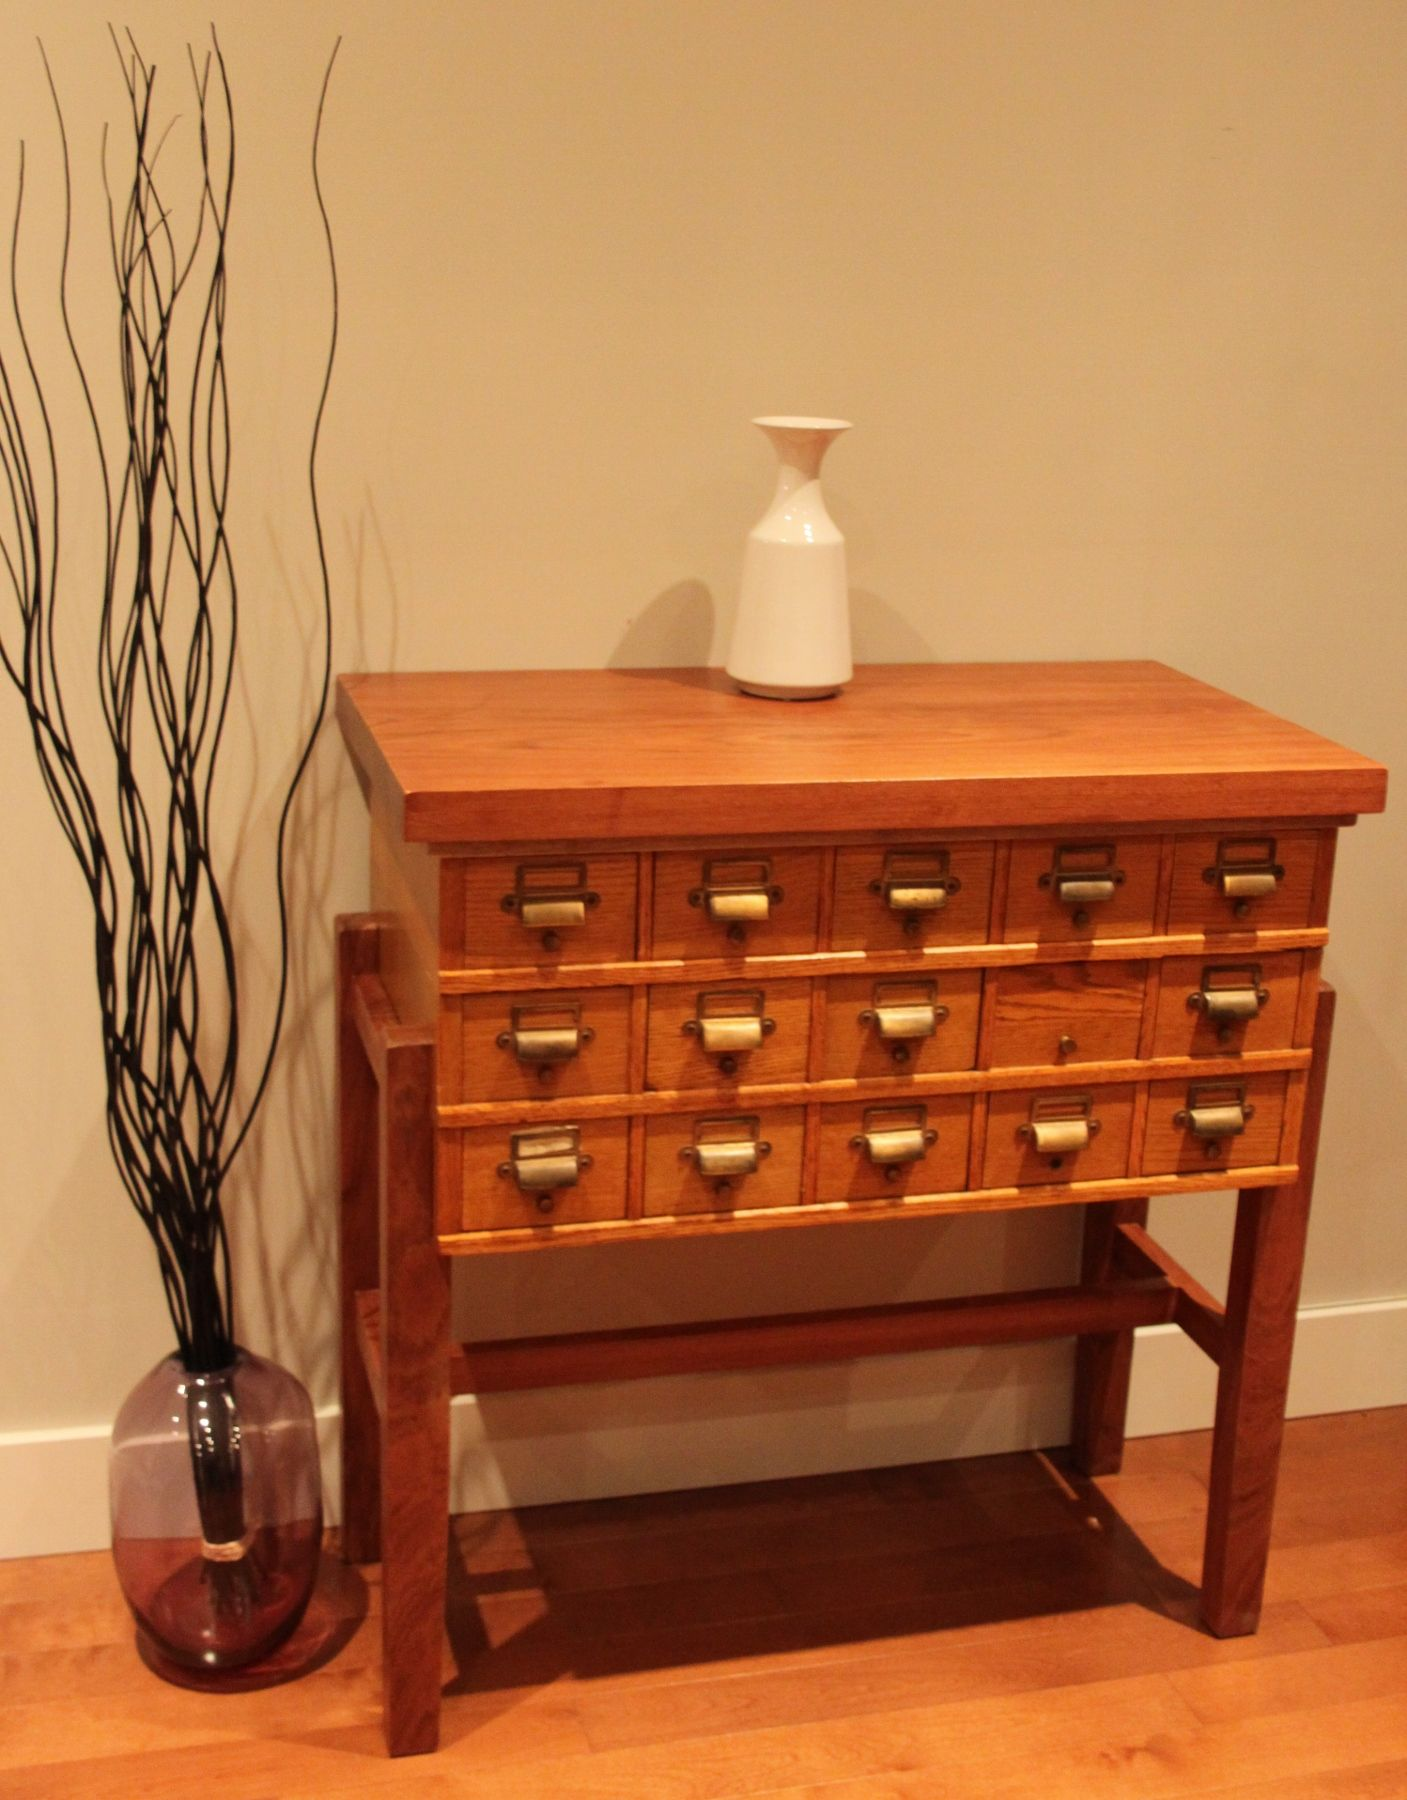 Old card catalogs as furniture